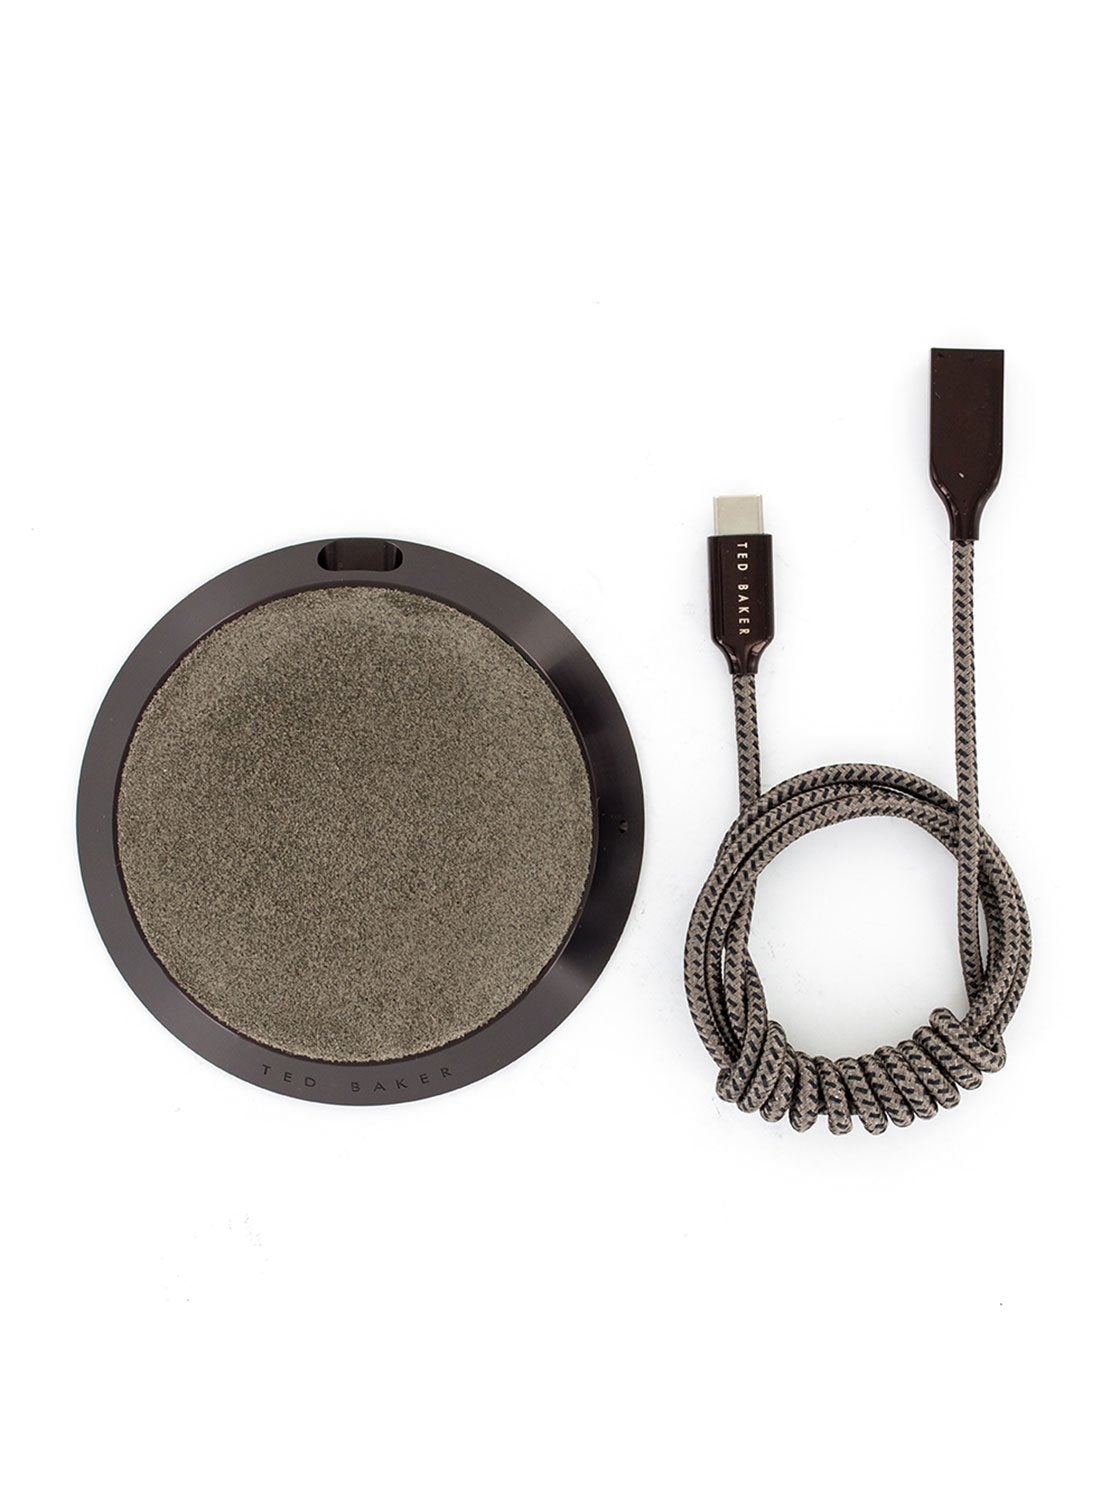 GEEVE Wireless Desktop Charger - Grey Leather / Chocolate Aluminium